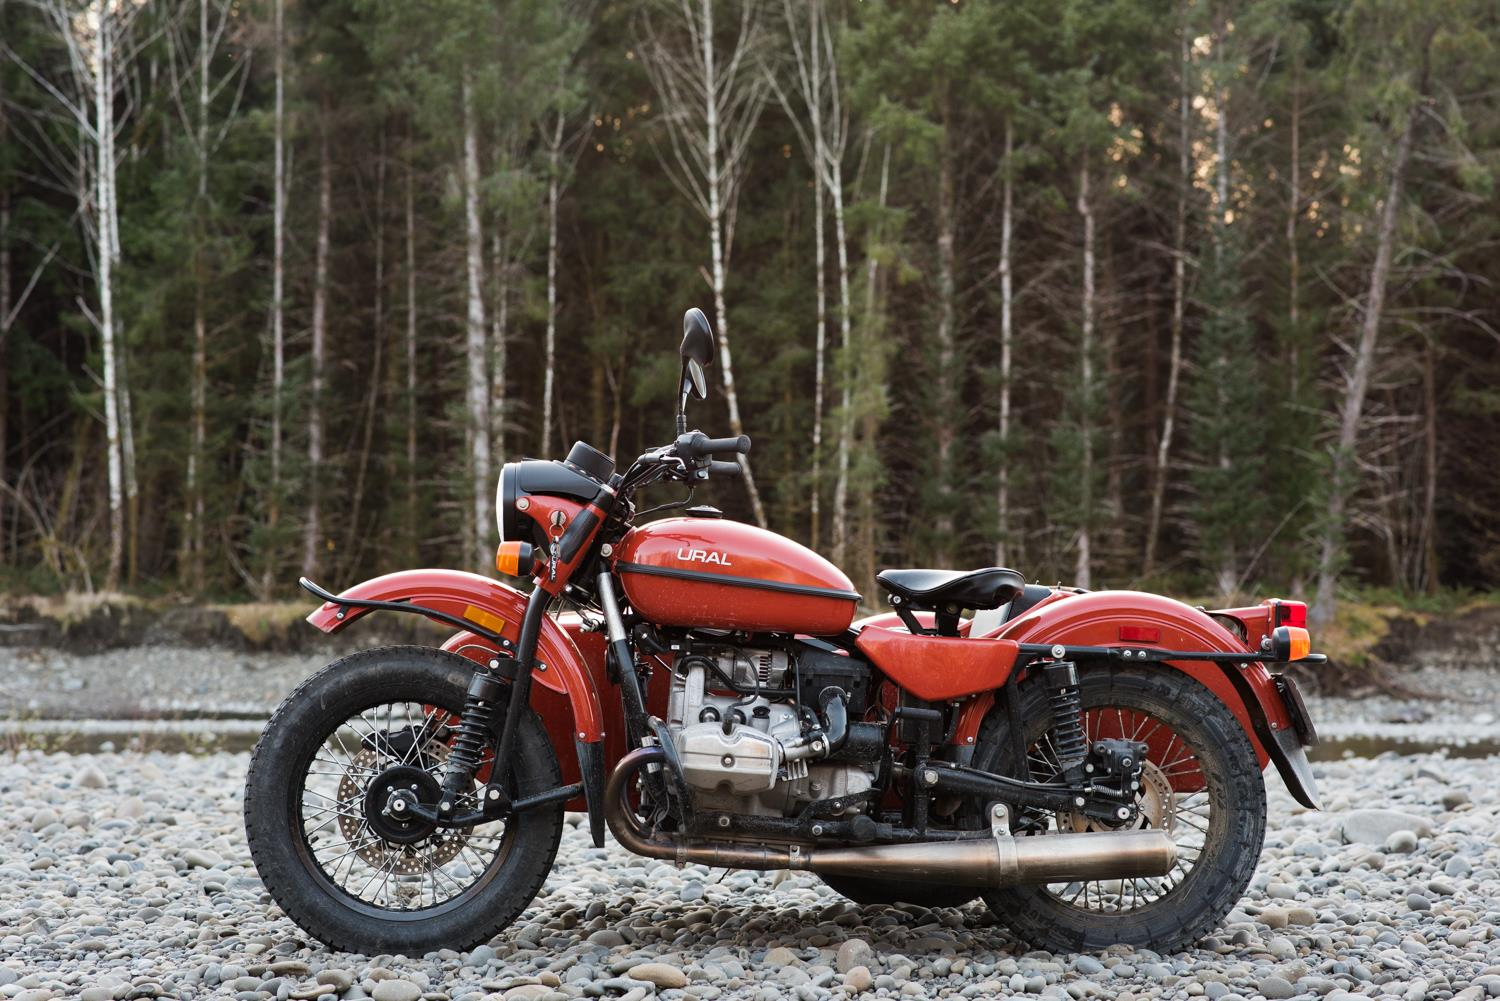 16Gear_Ural_9920-LR-Copy